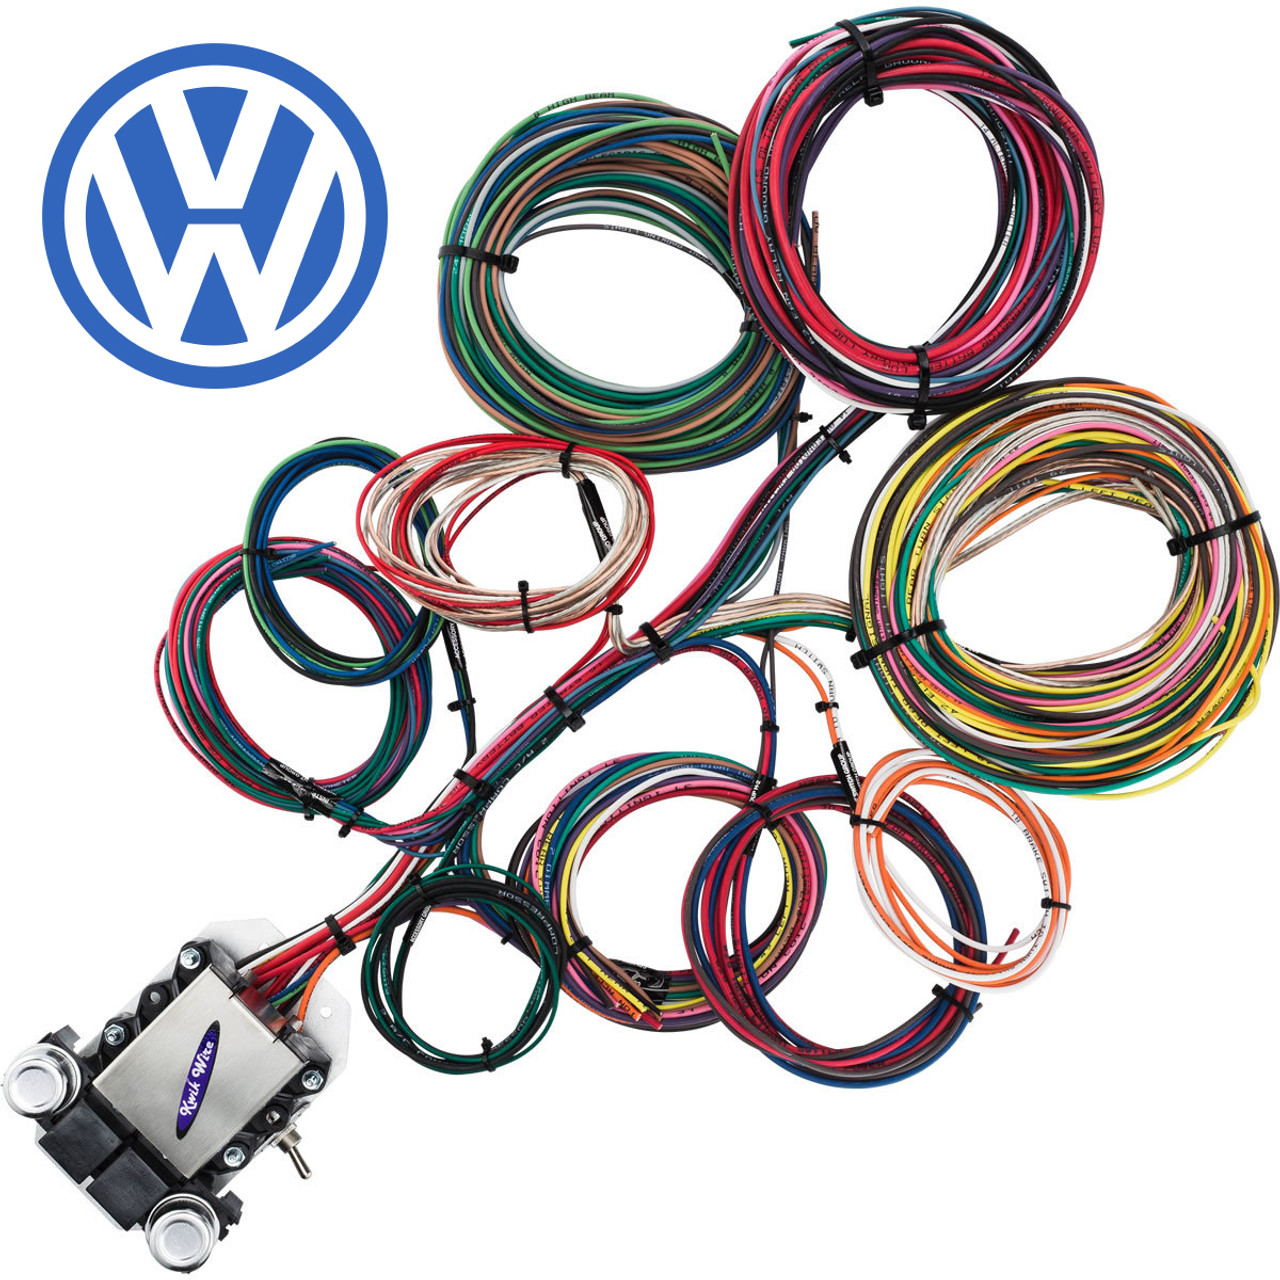 small resolution of 14 circuit vw wire harness kwikwire com electrify your ridevw wire harness 10